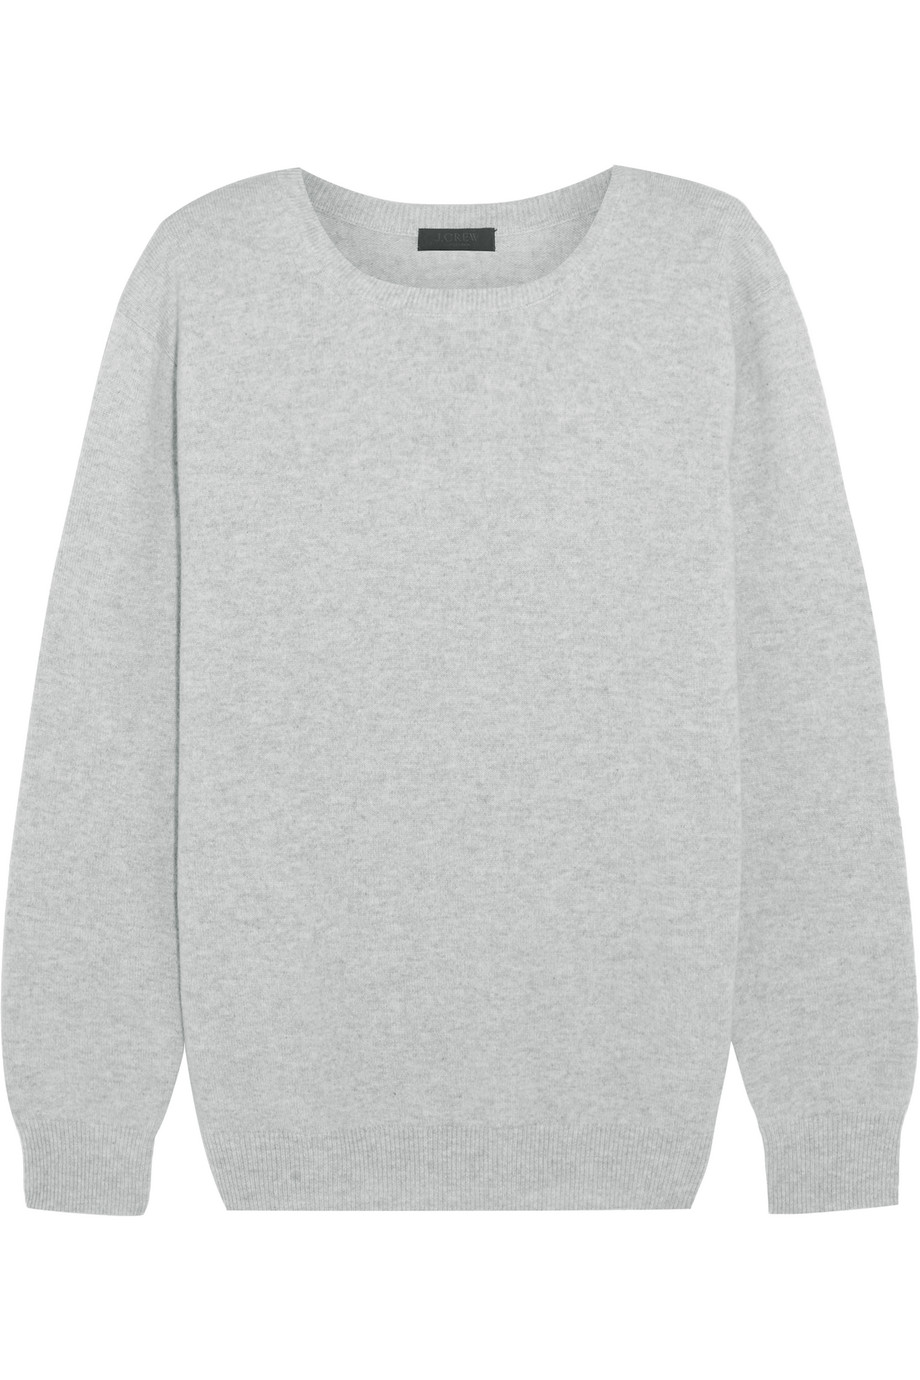 J.Crew Collection Cashmere Sweater, Light Gray, Women's